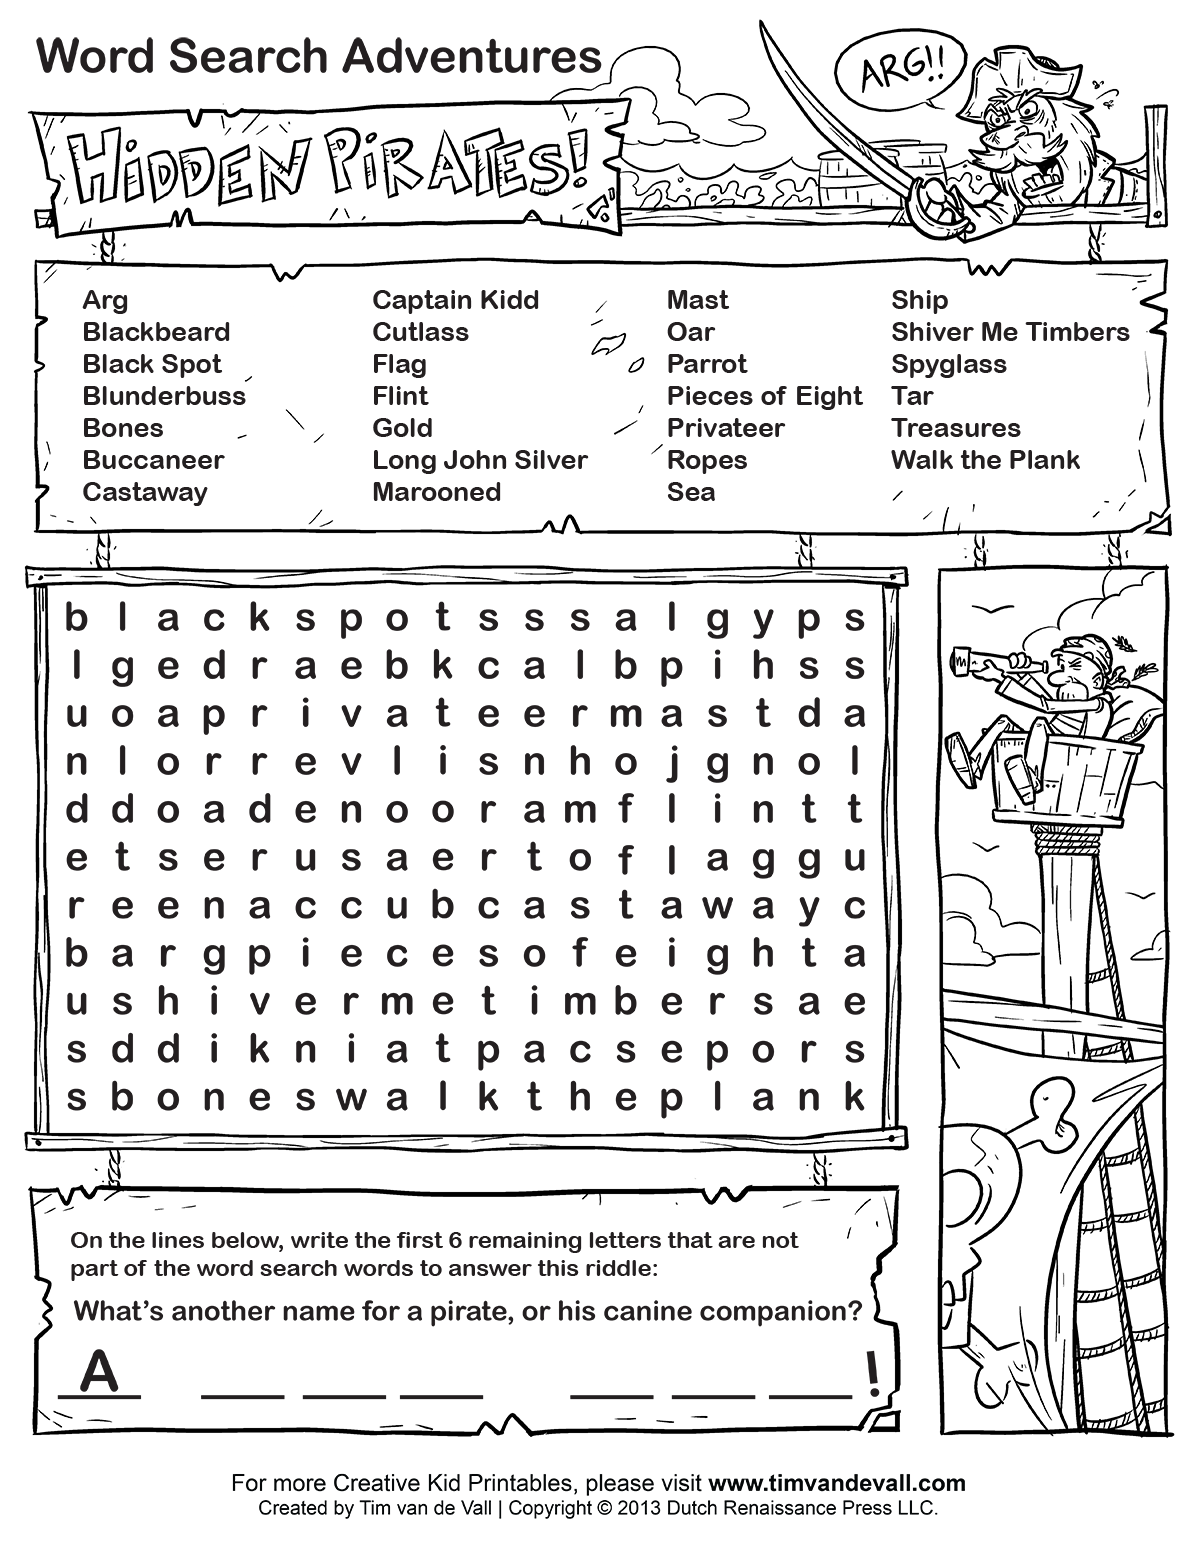 Find The Hidden Object Printable Free printable word searches